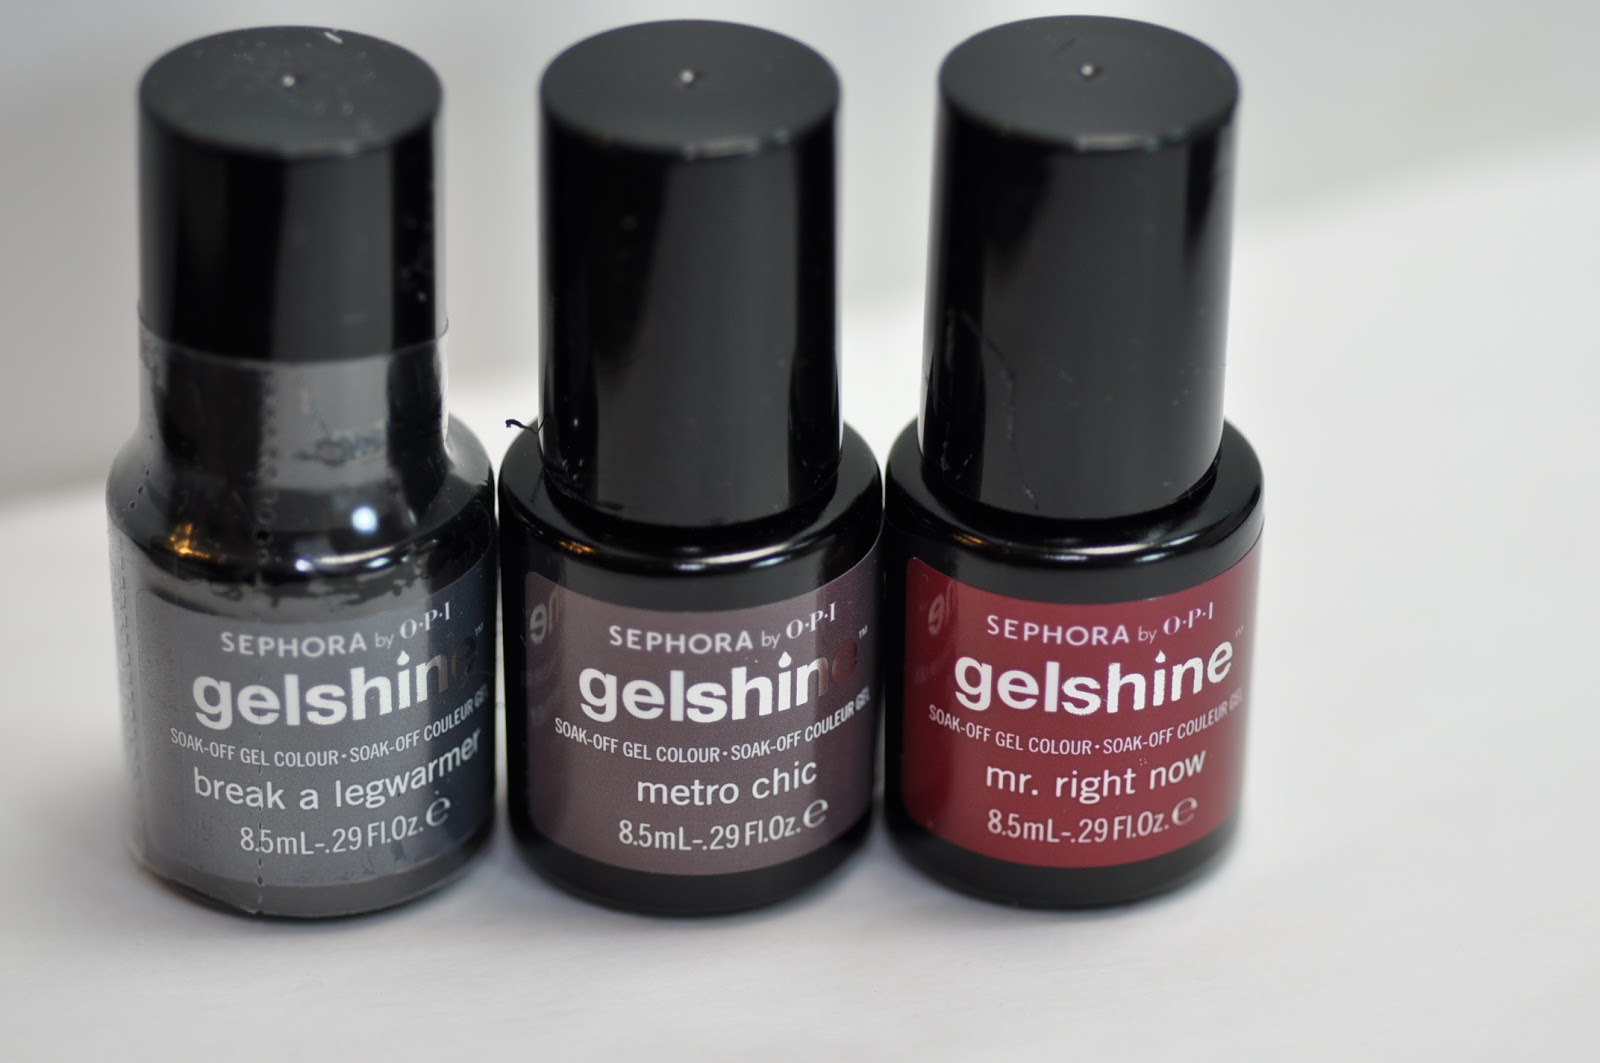 Sephora By Opi Gelshine At Home Gel Colour System Review